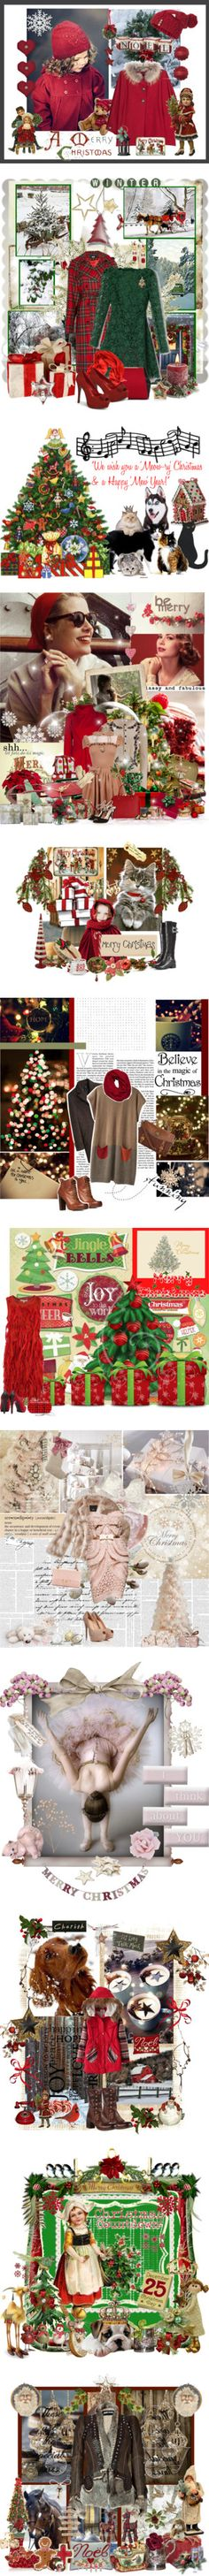 """Christmas, part deux"" by greygold ❤ liked on Polyvore"